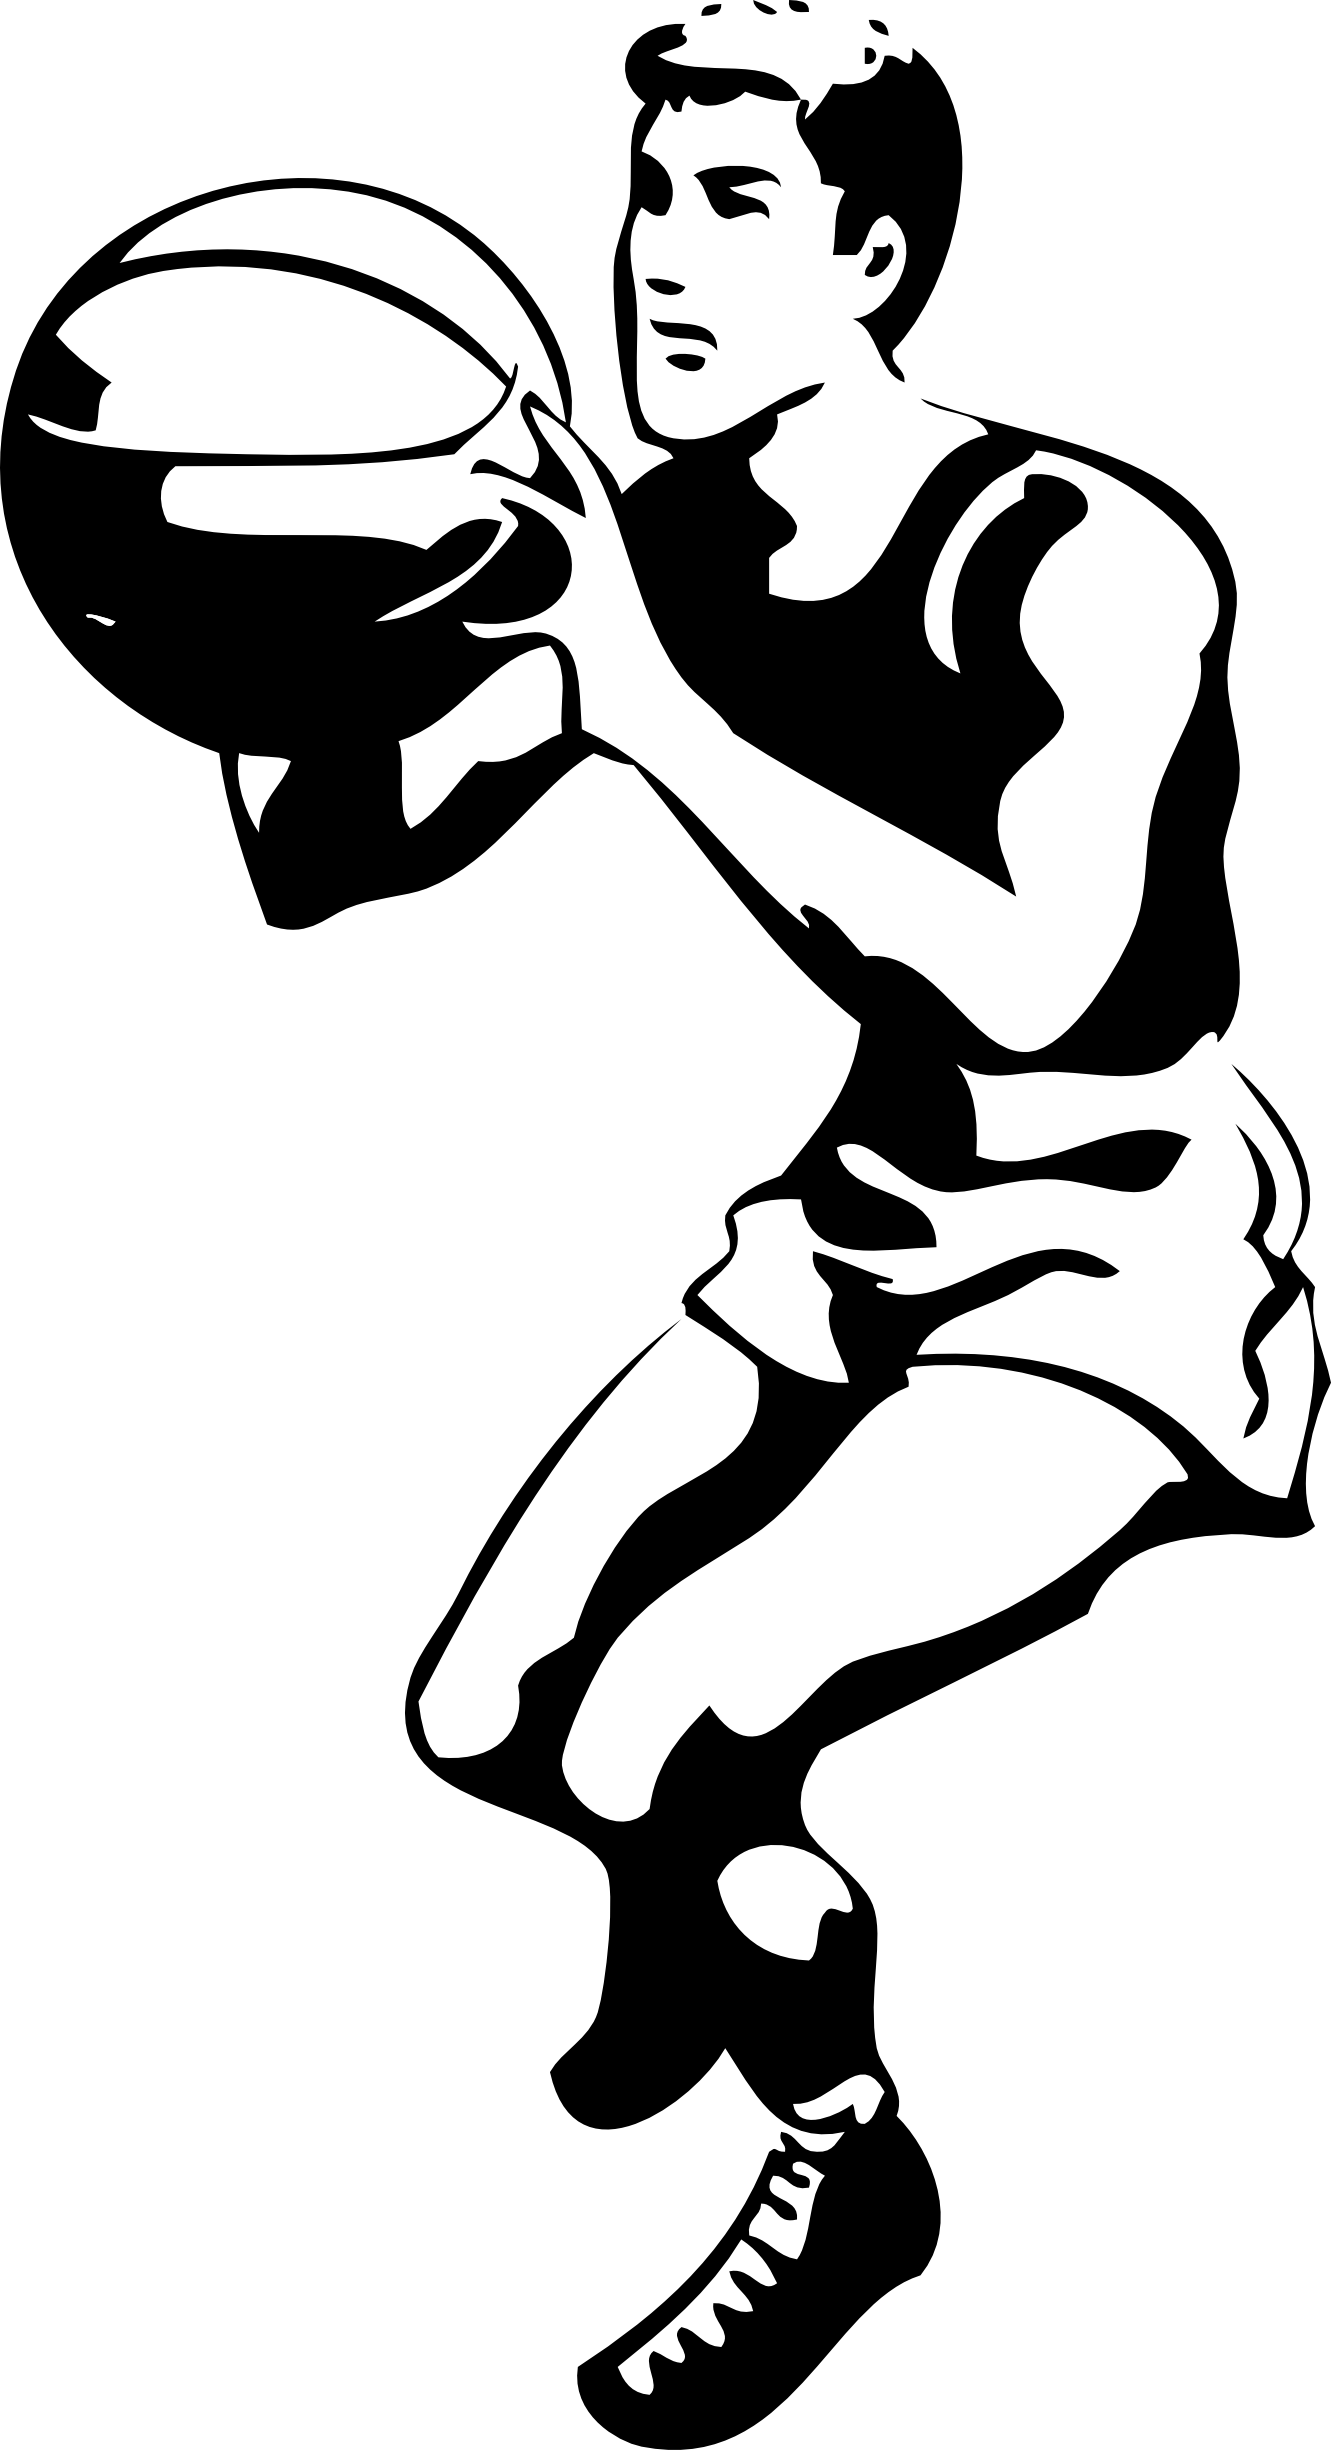 Clipart basketball players png freeuse stock Basketball Player Clipart Black And White | Clipart Panda - Free ... png freeuse stock